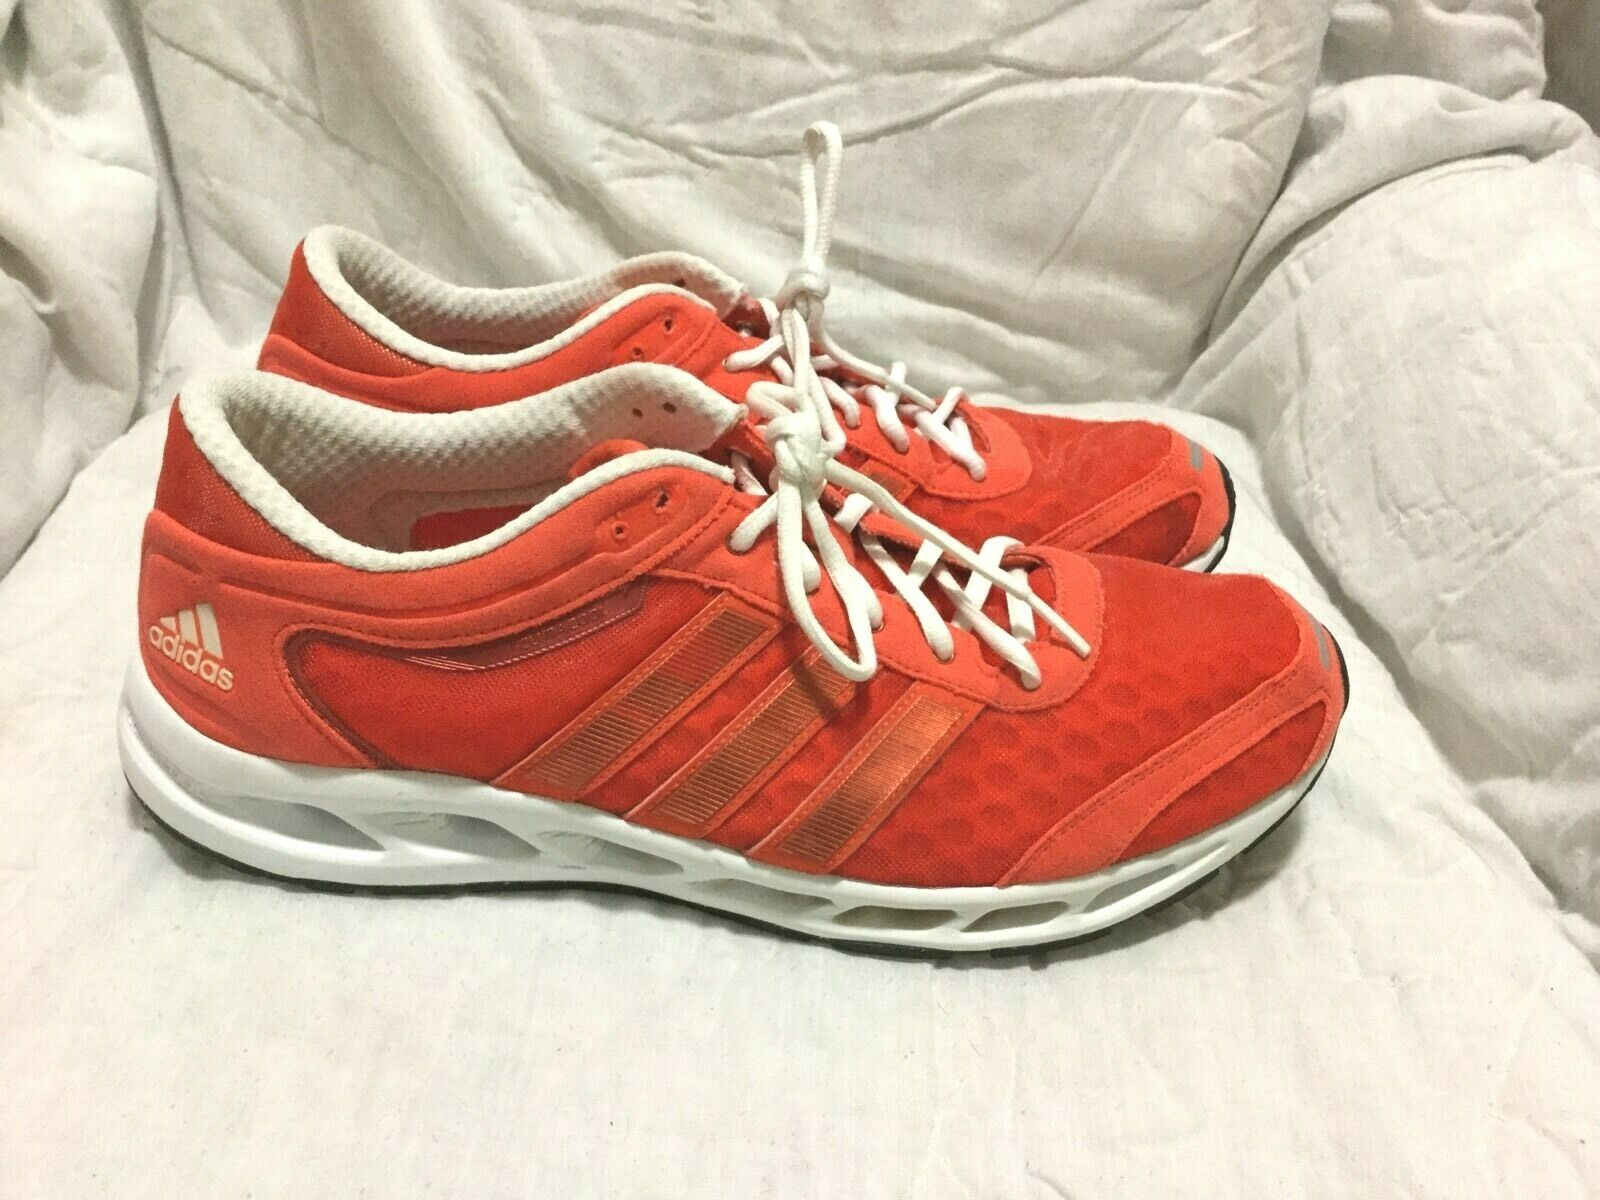 ADIDAS CLIMACOOL - TRAINING   RUNNING SHOES - MULTI COLOR - ( SIZE 13 )  MEN`S